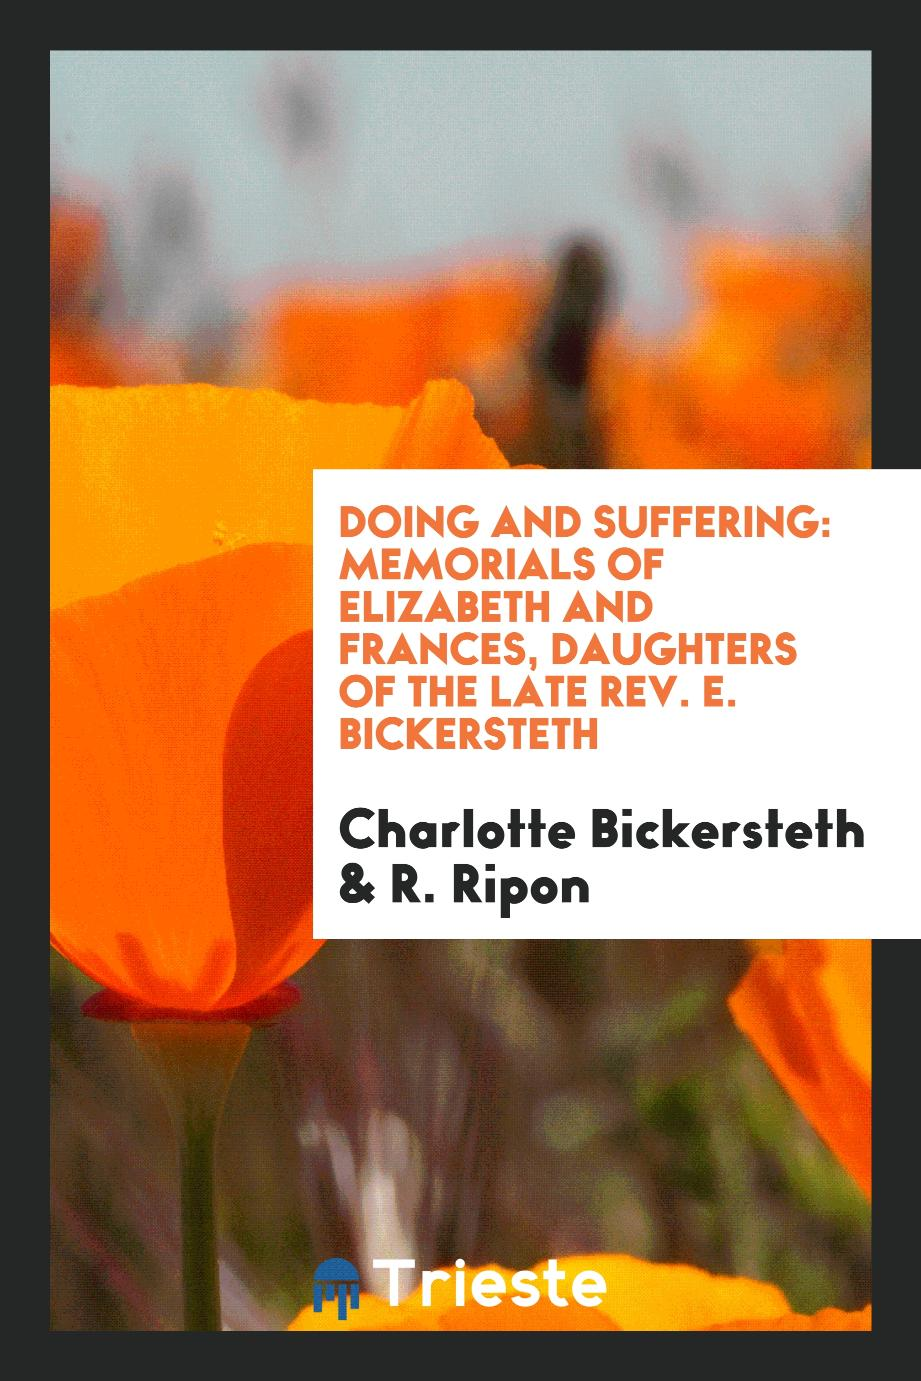 Doing and Suffering: Memorials of Elizabeth and Frances, Daughters of the Late Rev. E. Bickersteth